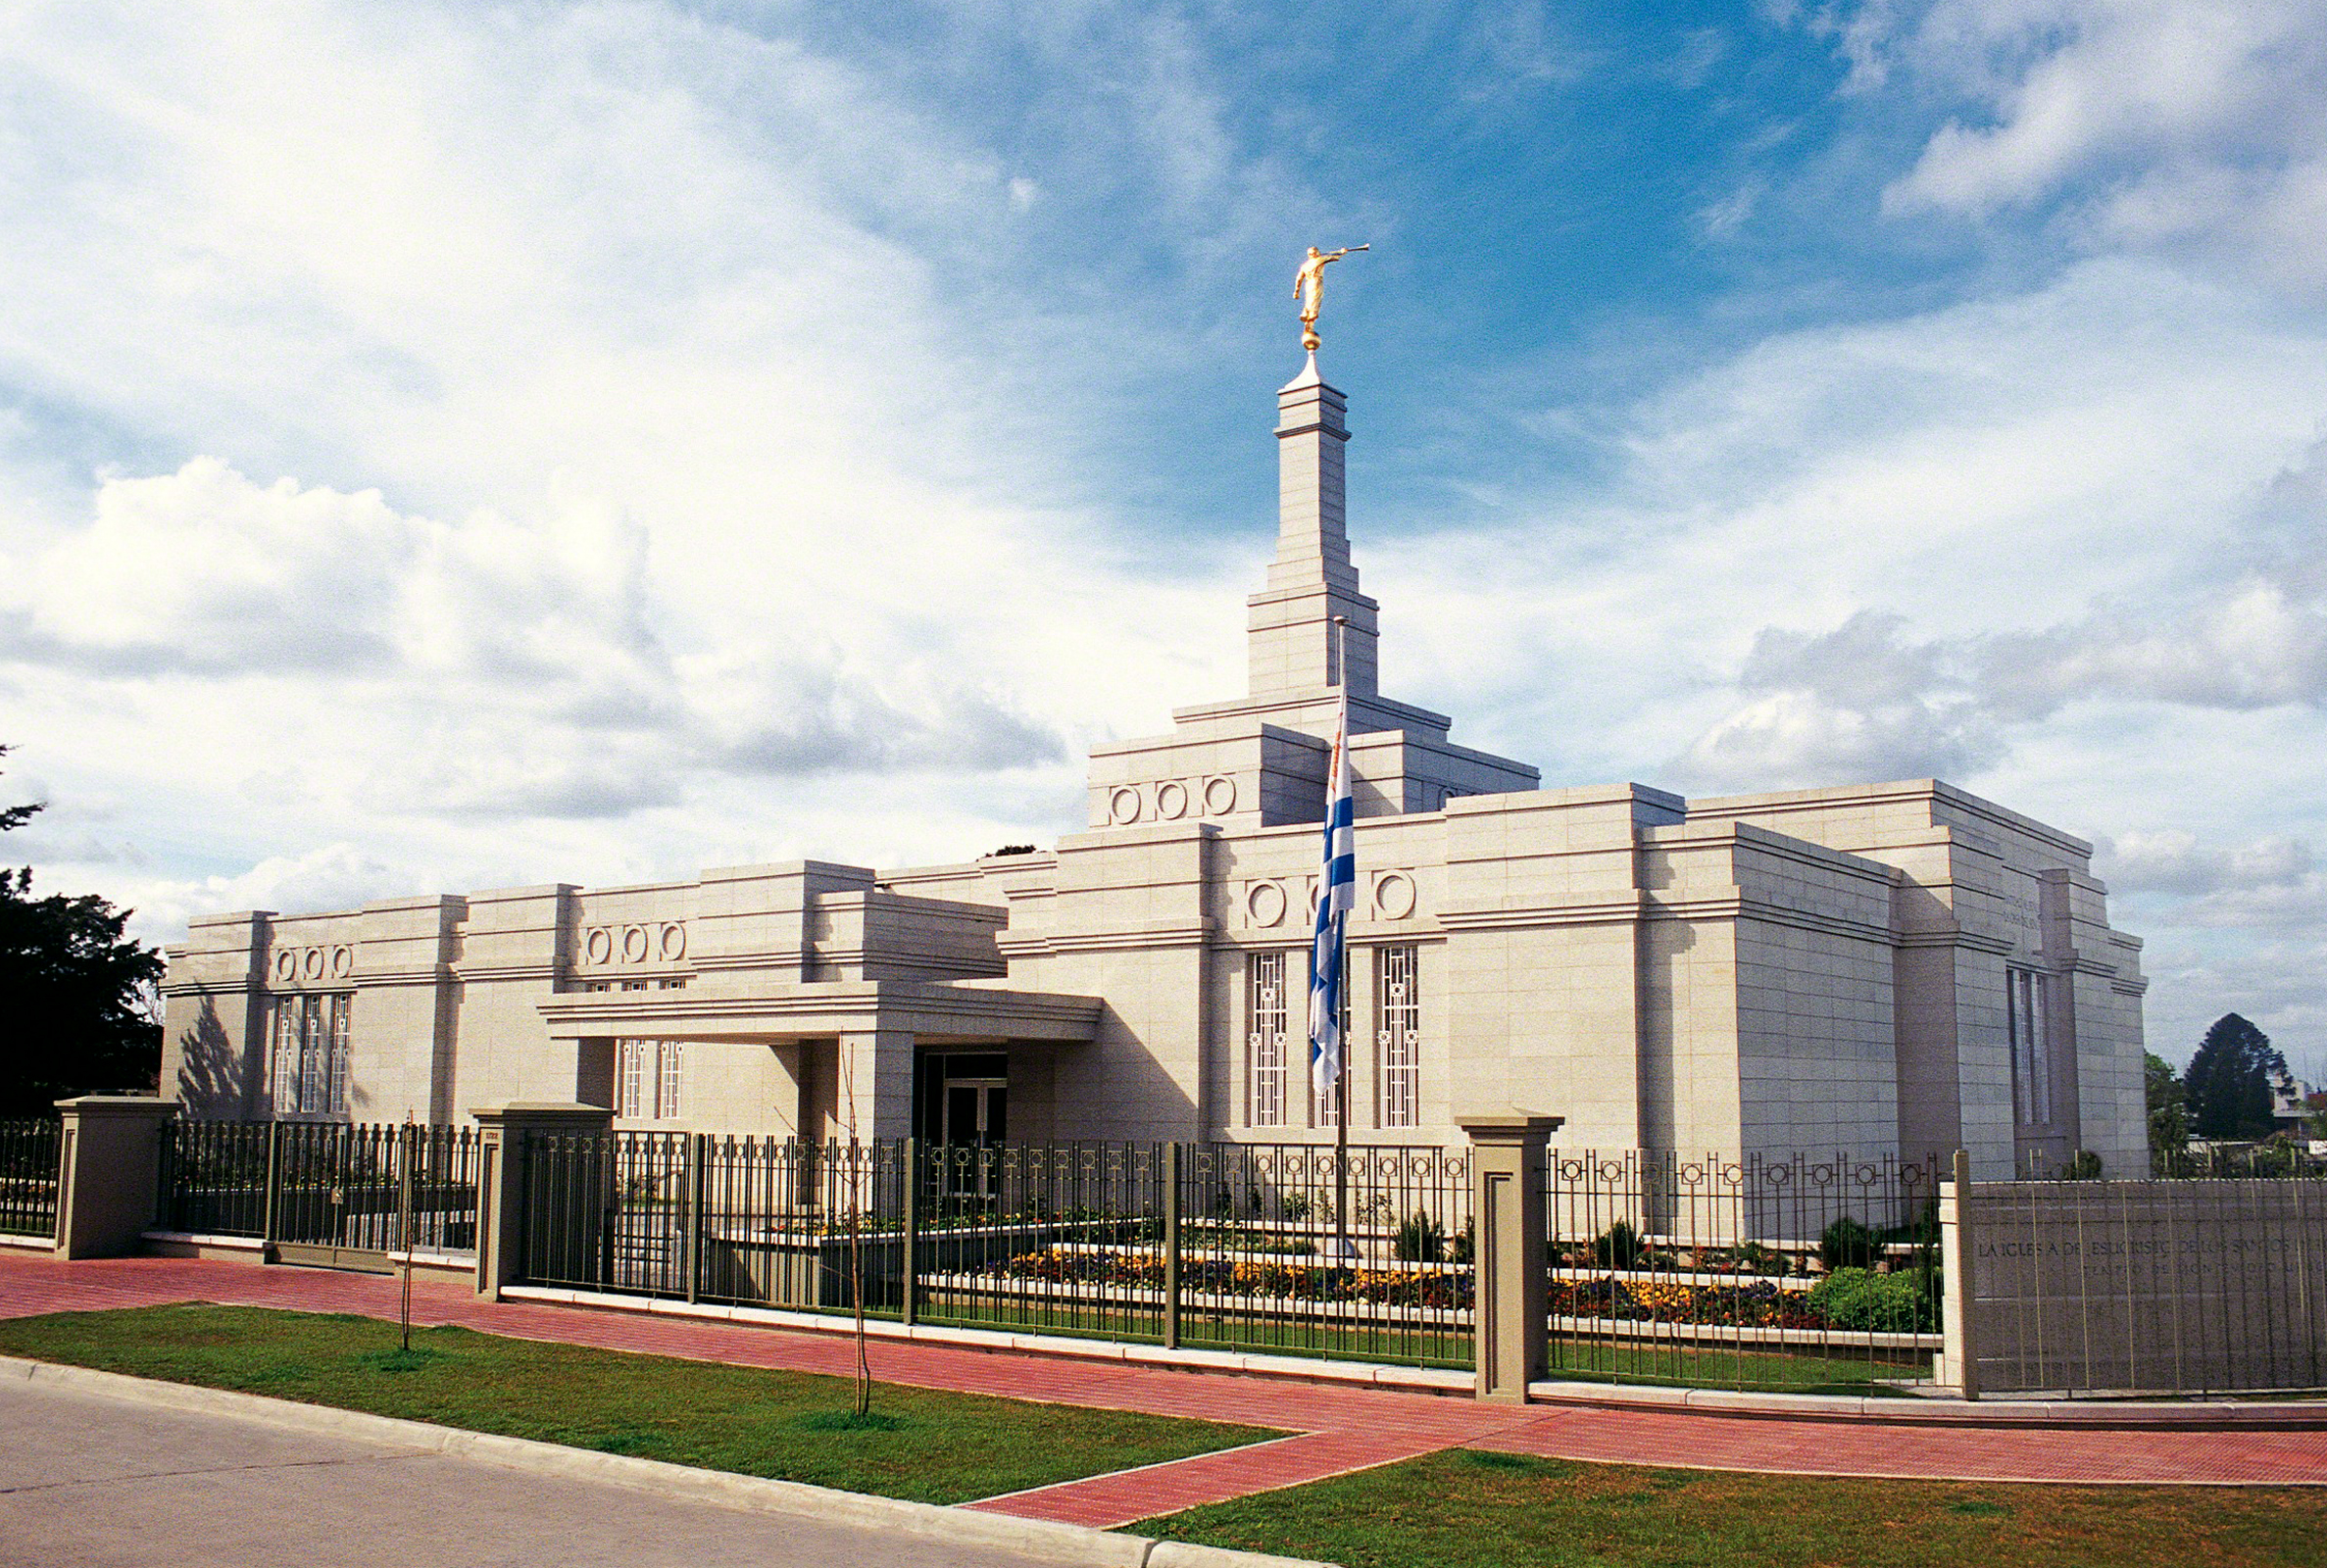 The Church of Jesus Christ of Latter-day Saints - Stevenson WA | 650 NW Gropper Rd, Stevenson, WA, 98648 | +1 (509) 427-7910